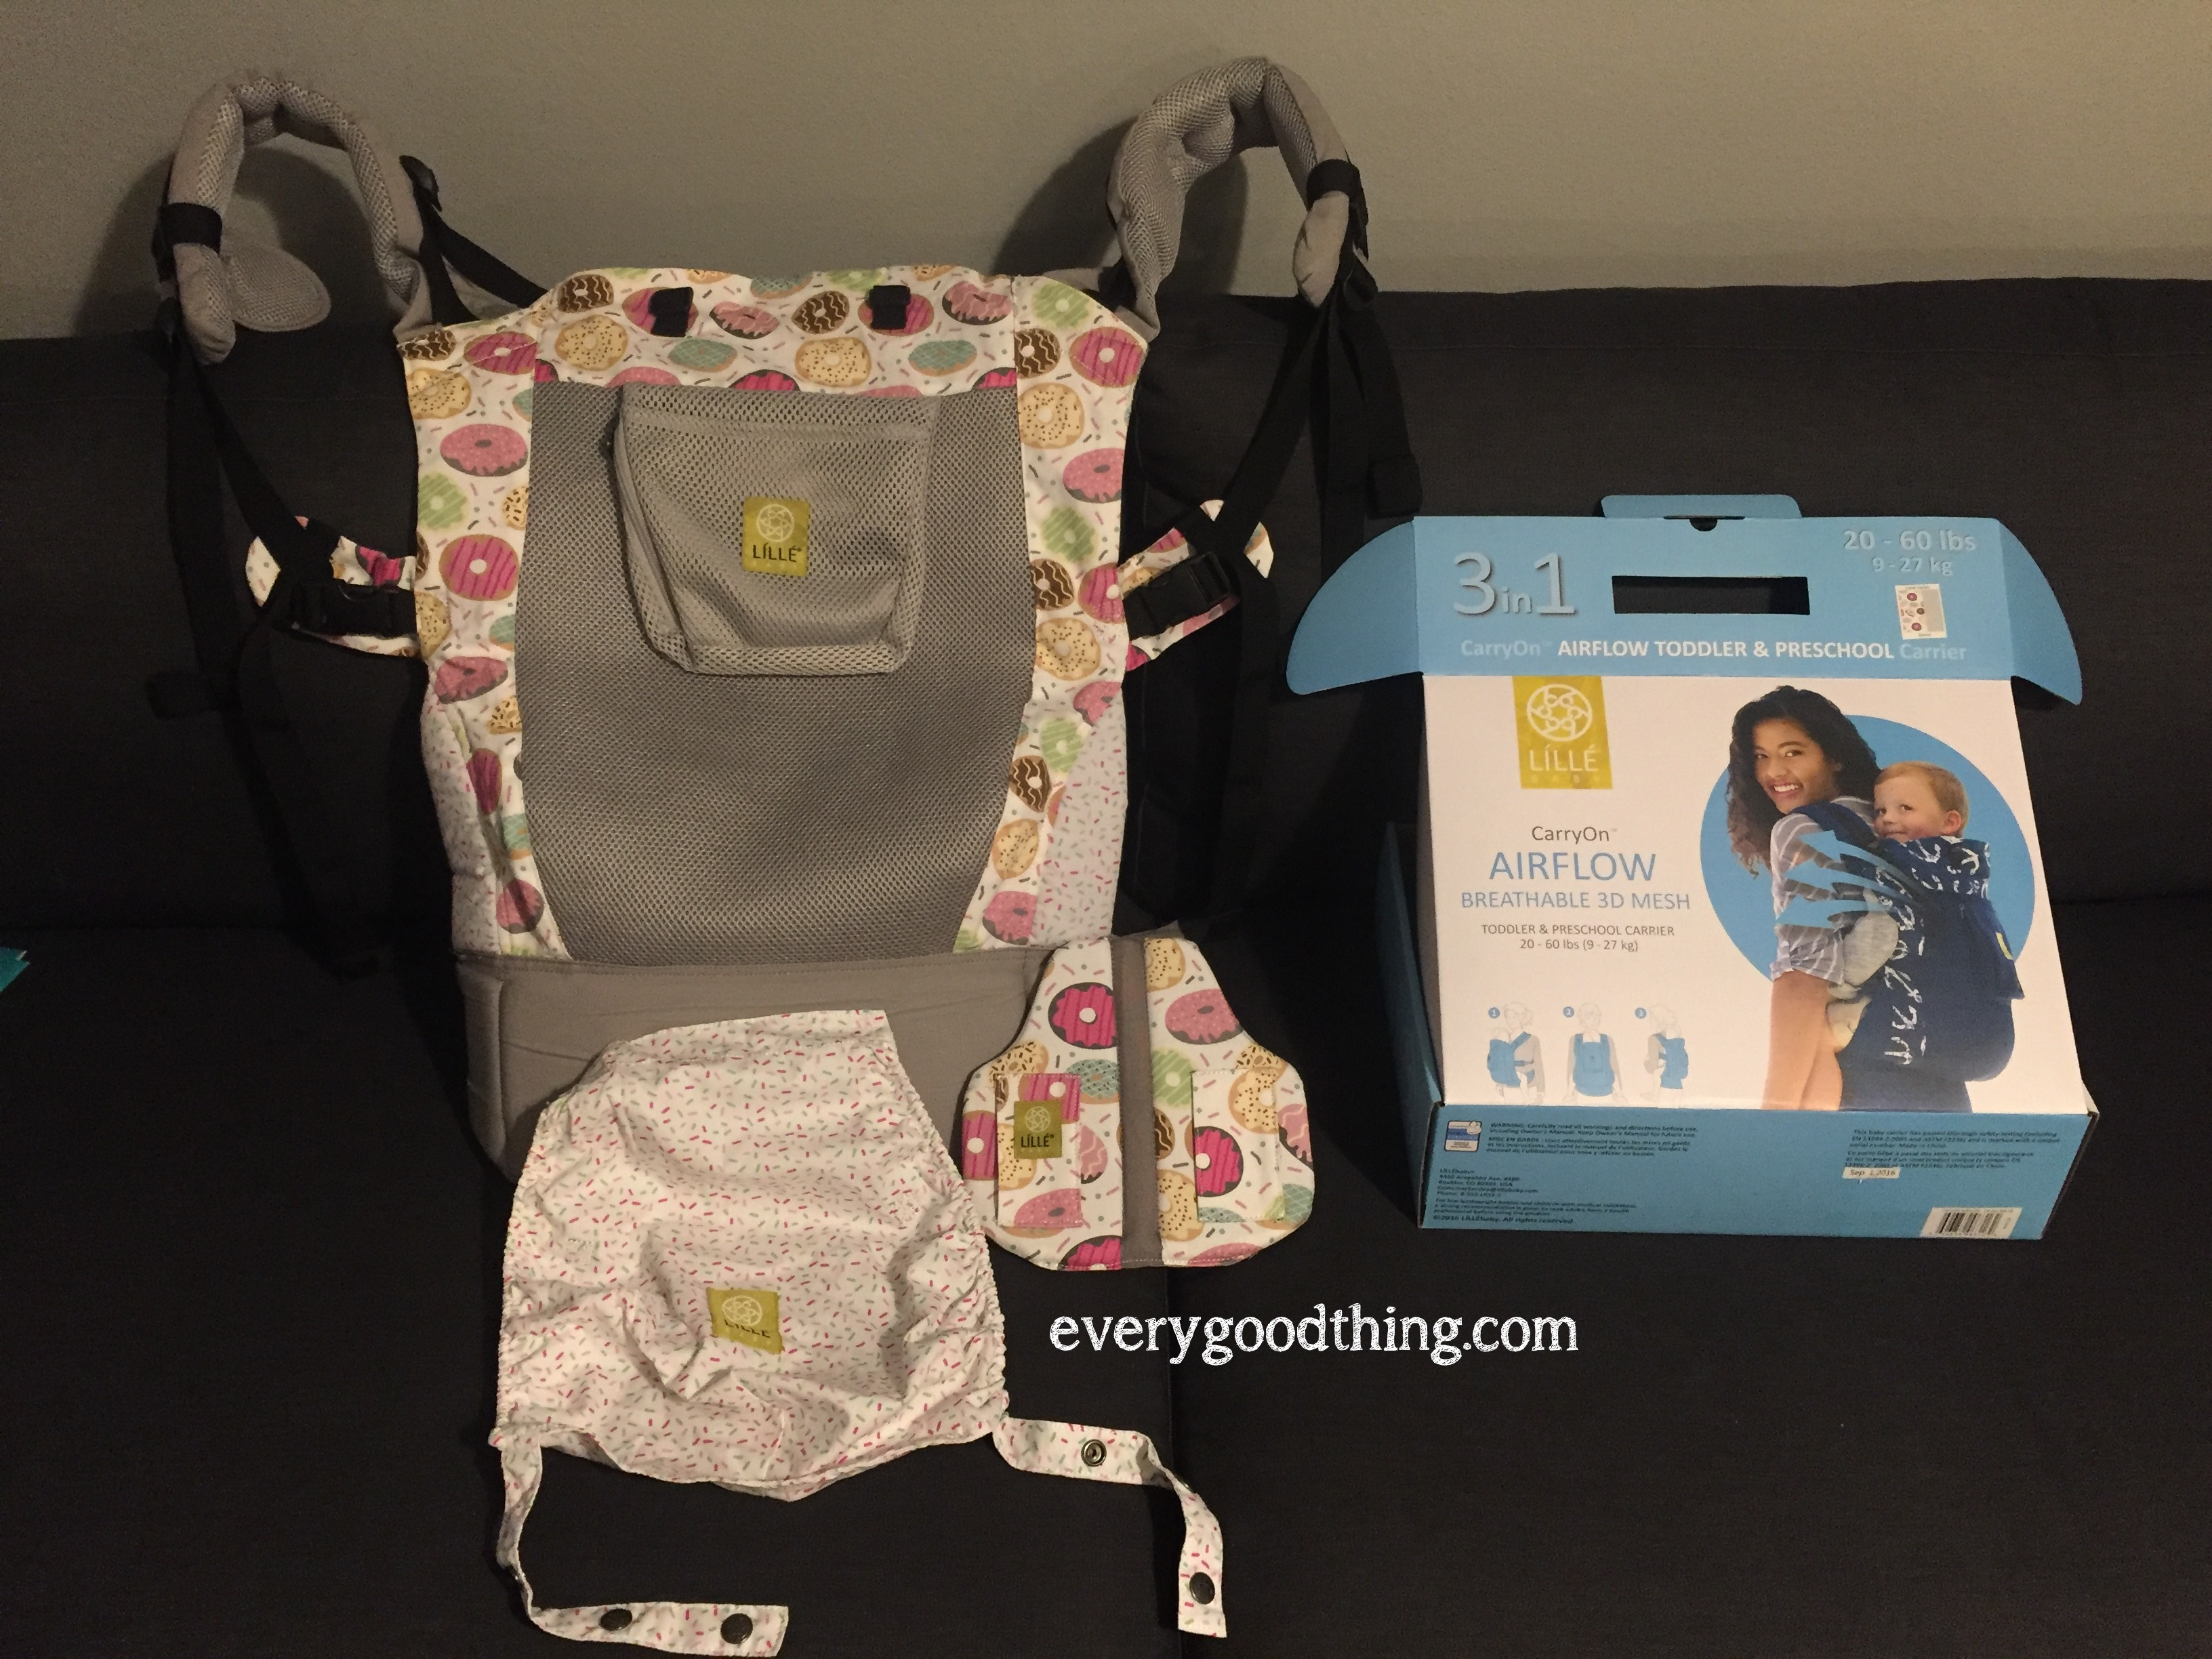 Lillebaby carryon airflow unboxed